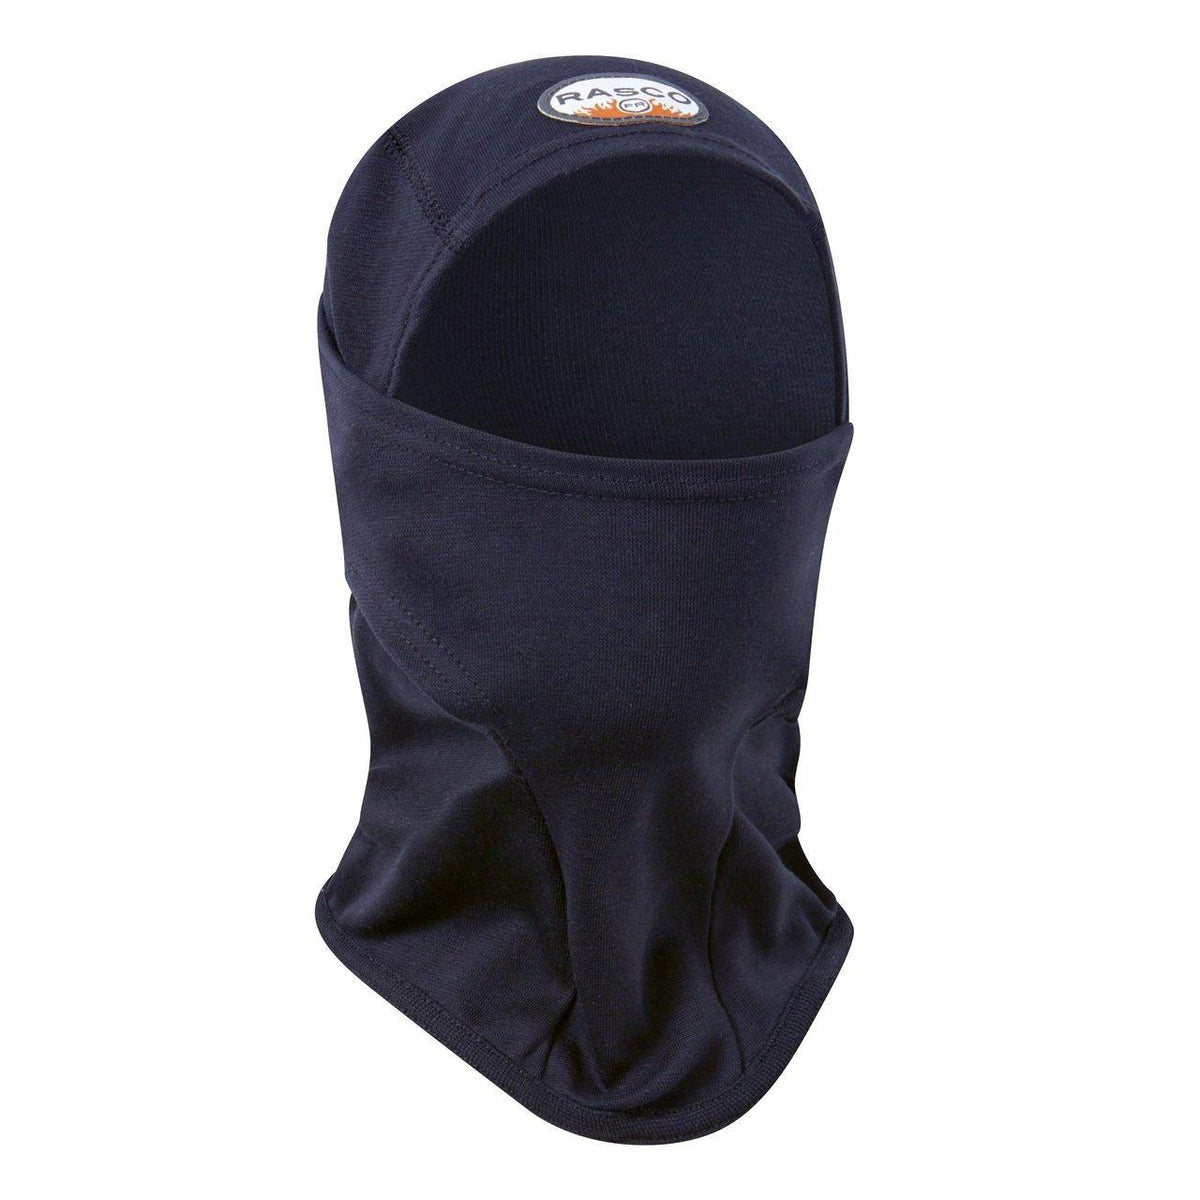 Rasco Fr Nbc21 Navy Bbc22 Black Balaclava Fire